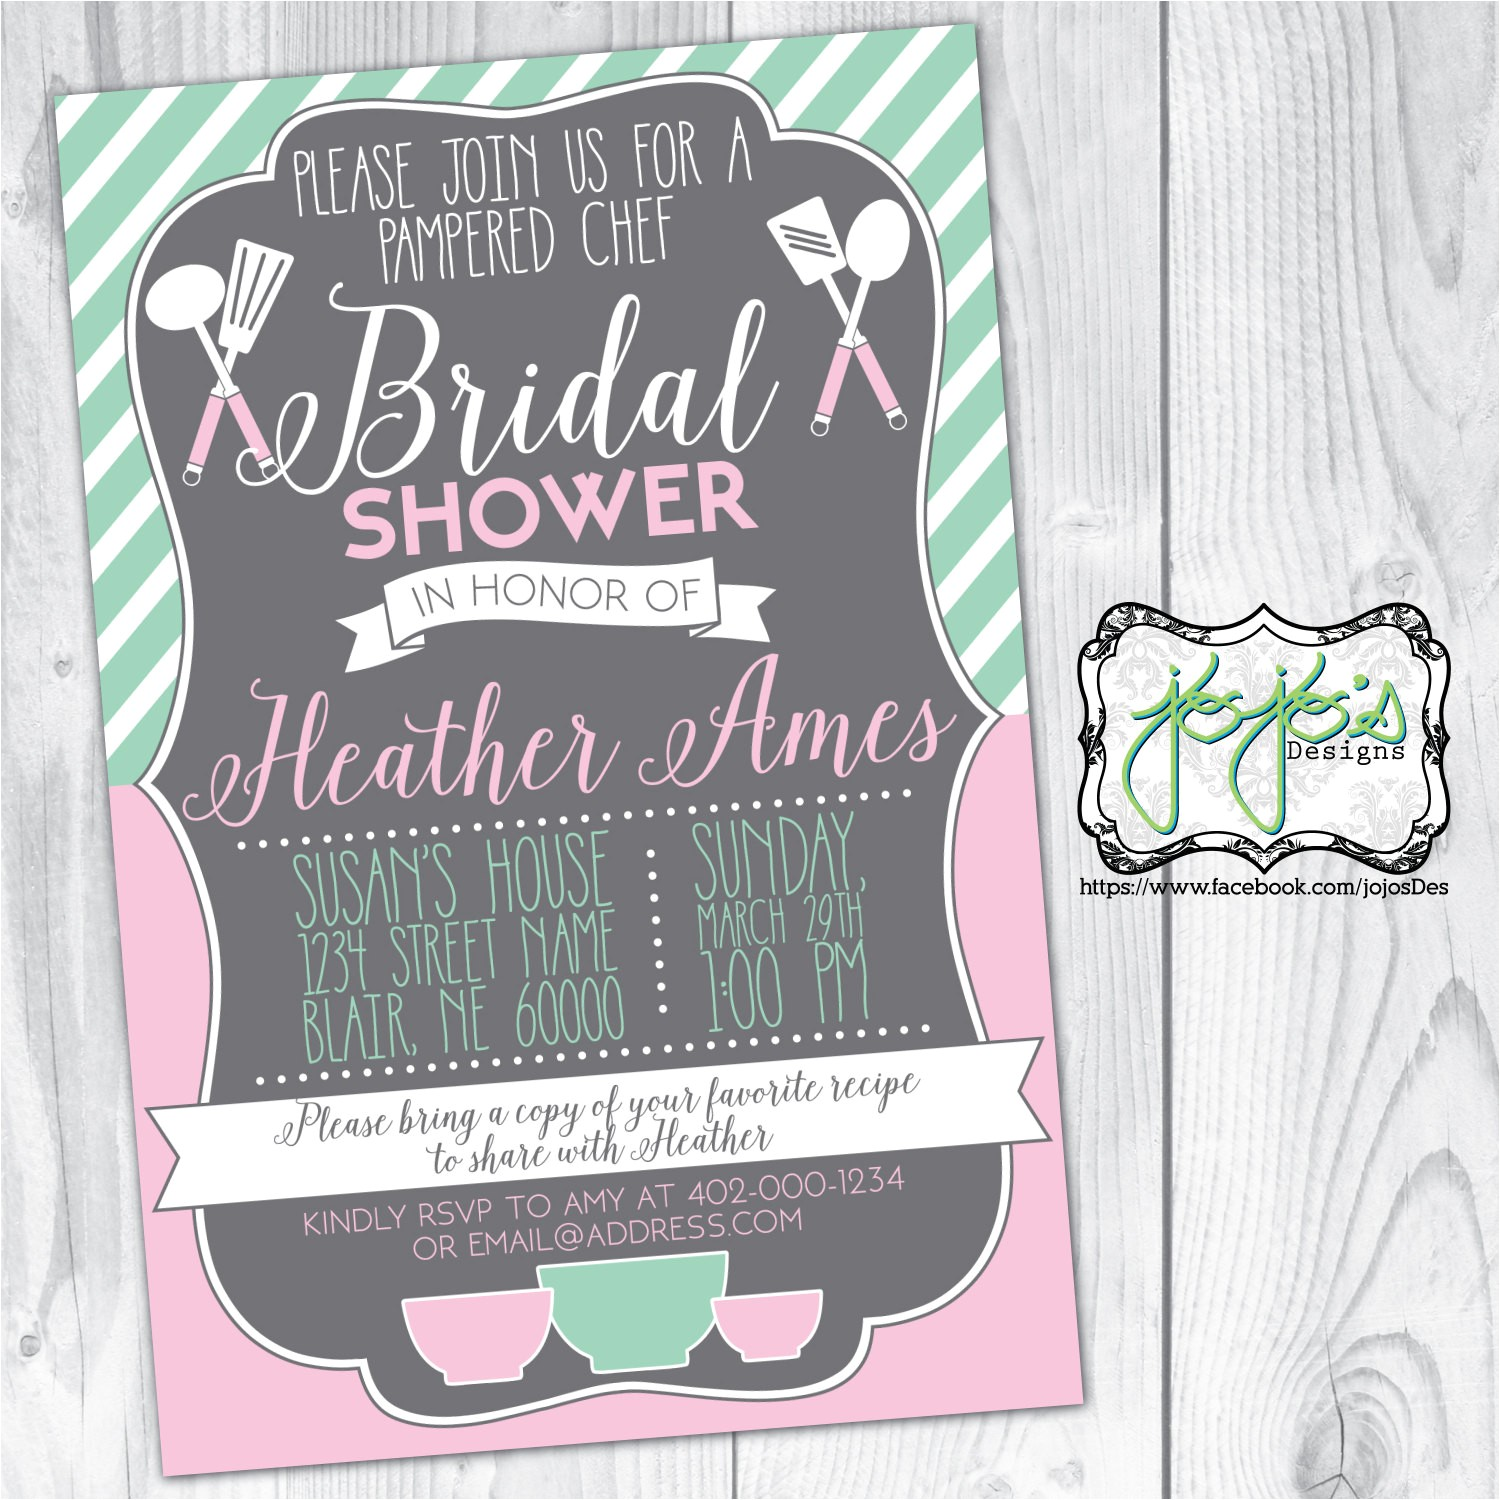 pampered chef bridal shower invitation